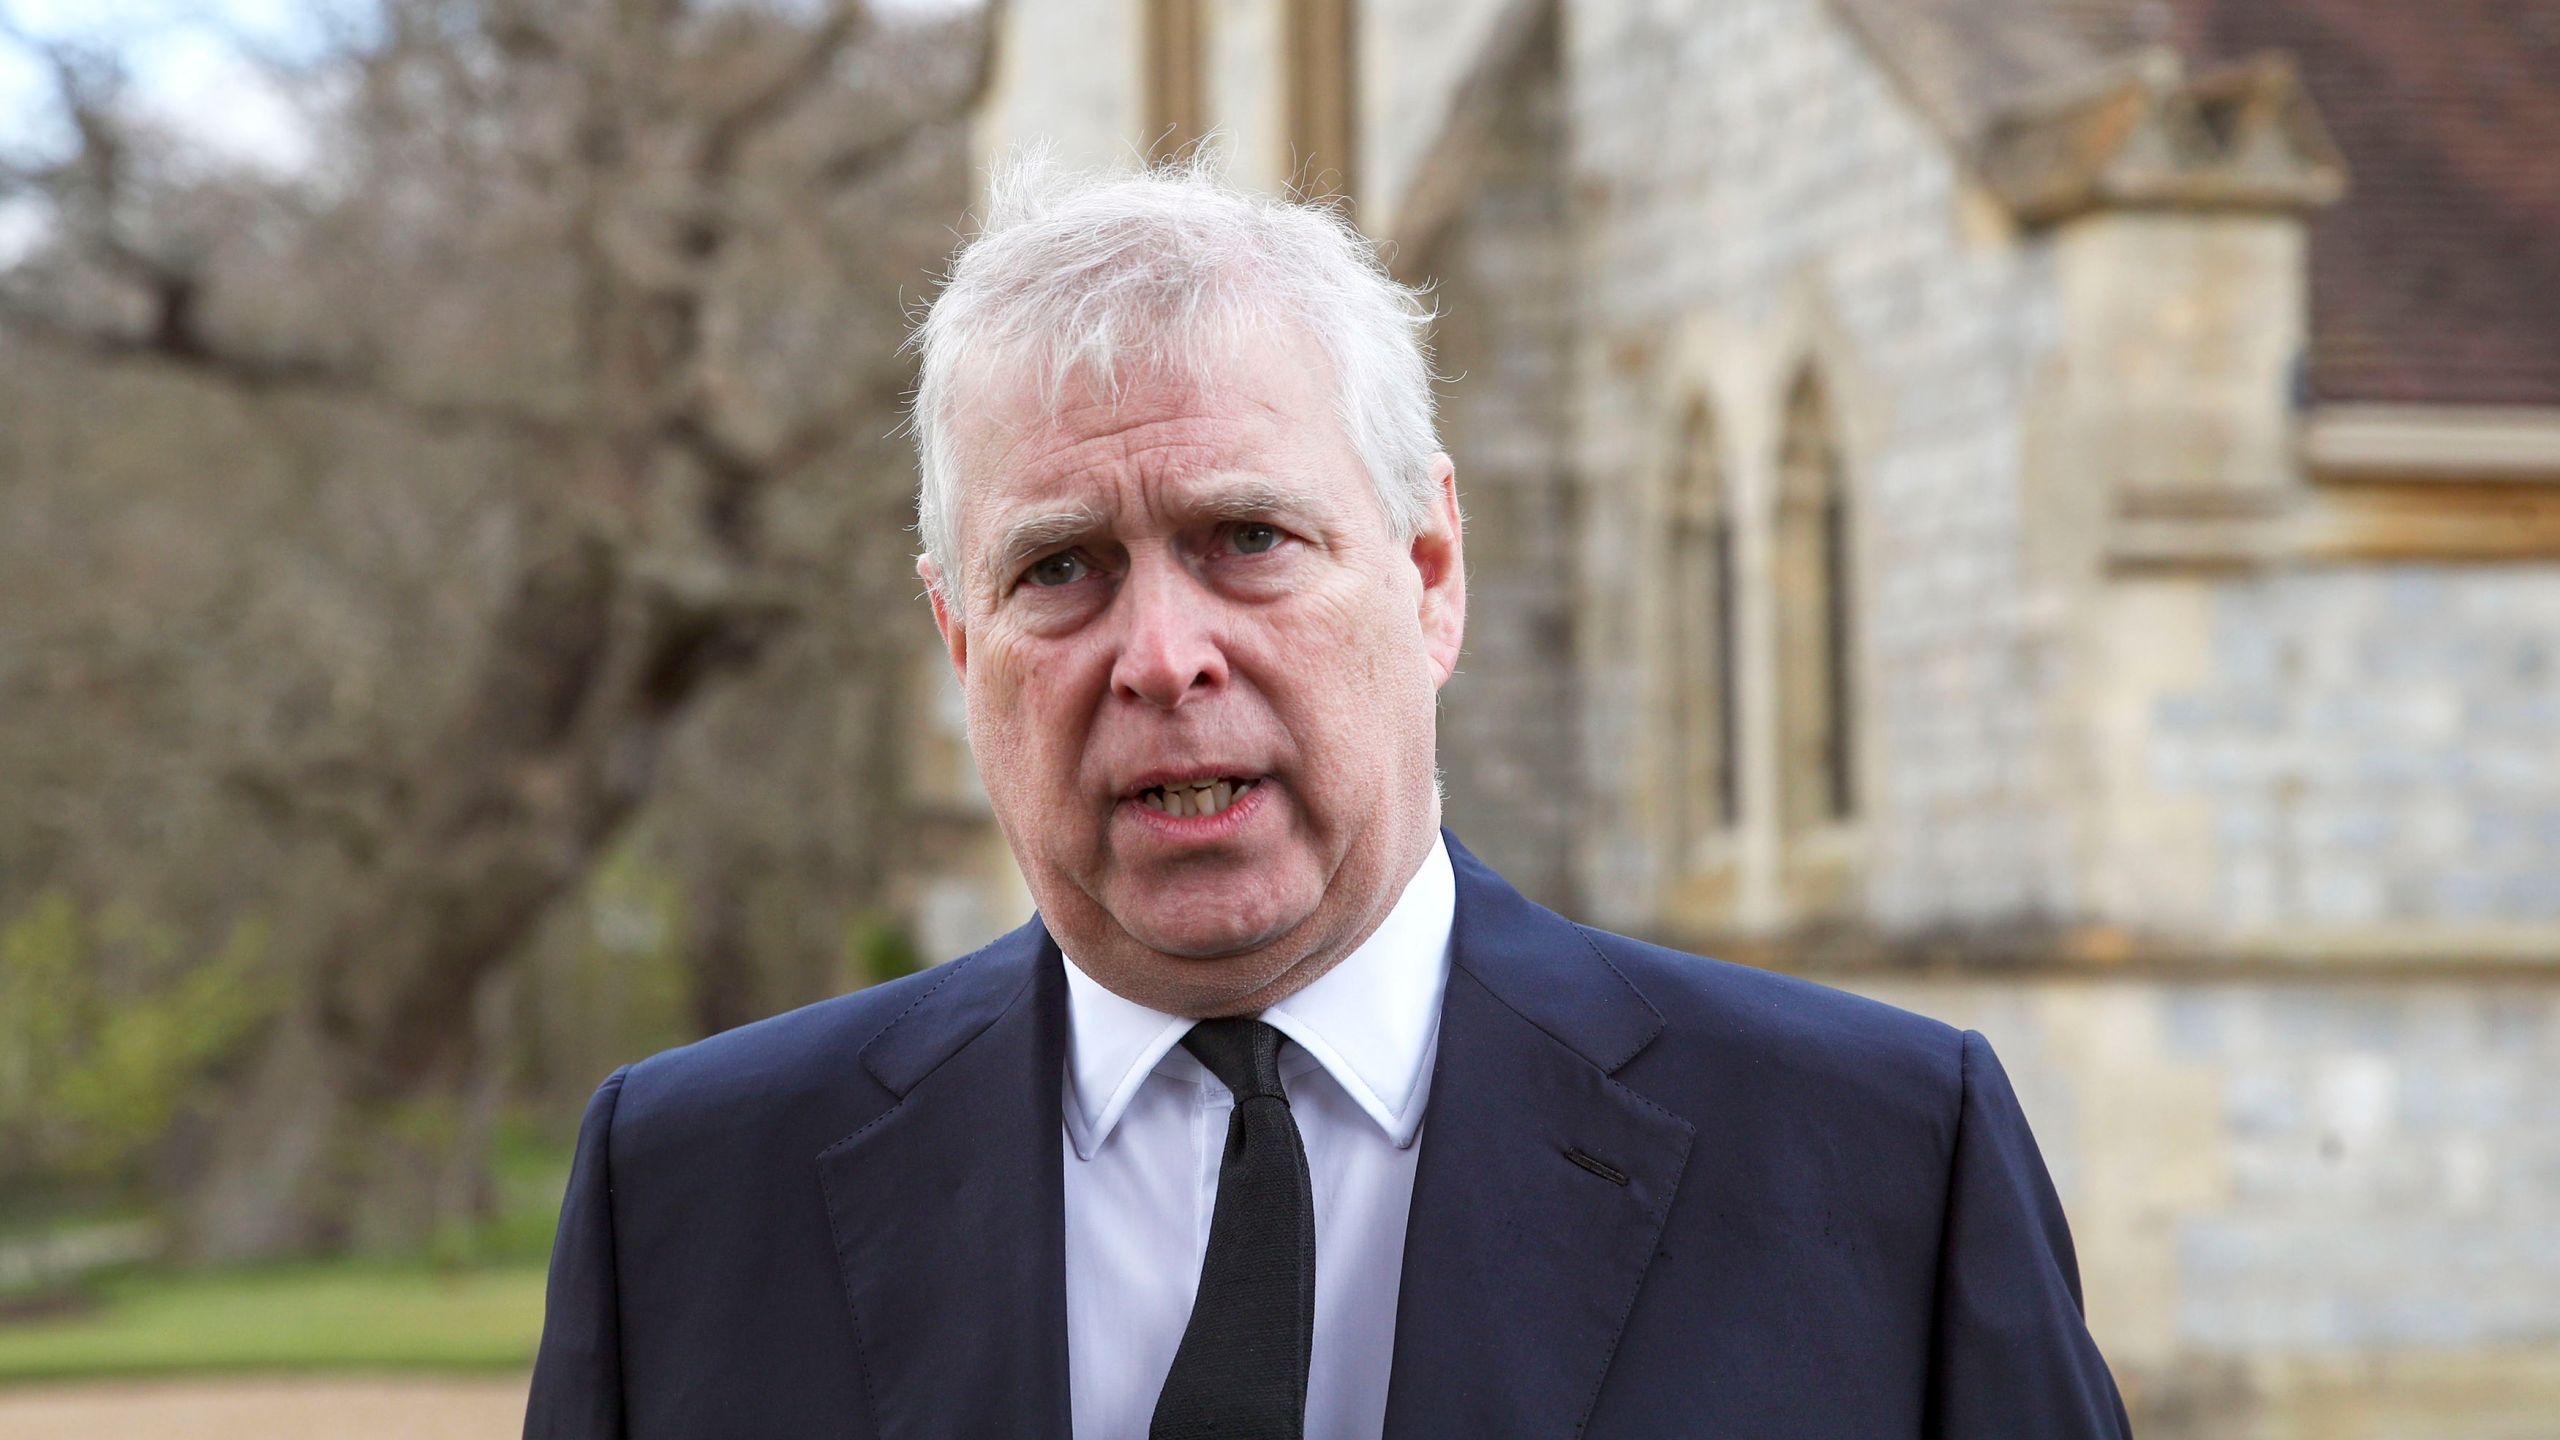 Britain's Prince Andrew during a television interview at the Royal Chapel of All Saints at Royal Lodge, Windsor, following the announcement of Prince Philip, in England, Sunday, April 11, 2021. (Steve Parsons/Pool Photo via AP)